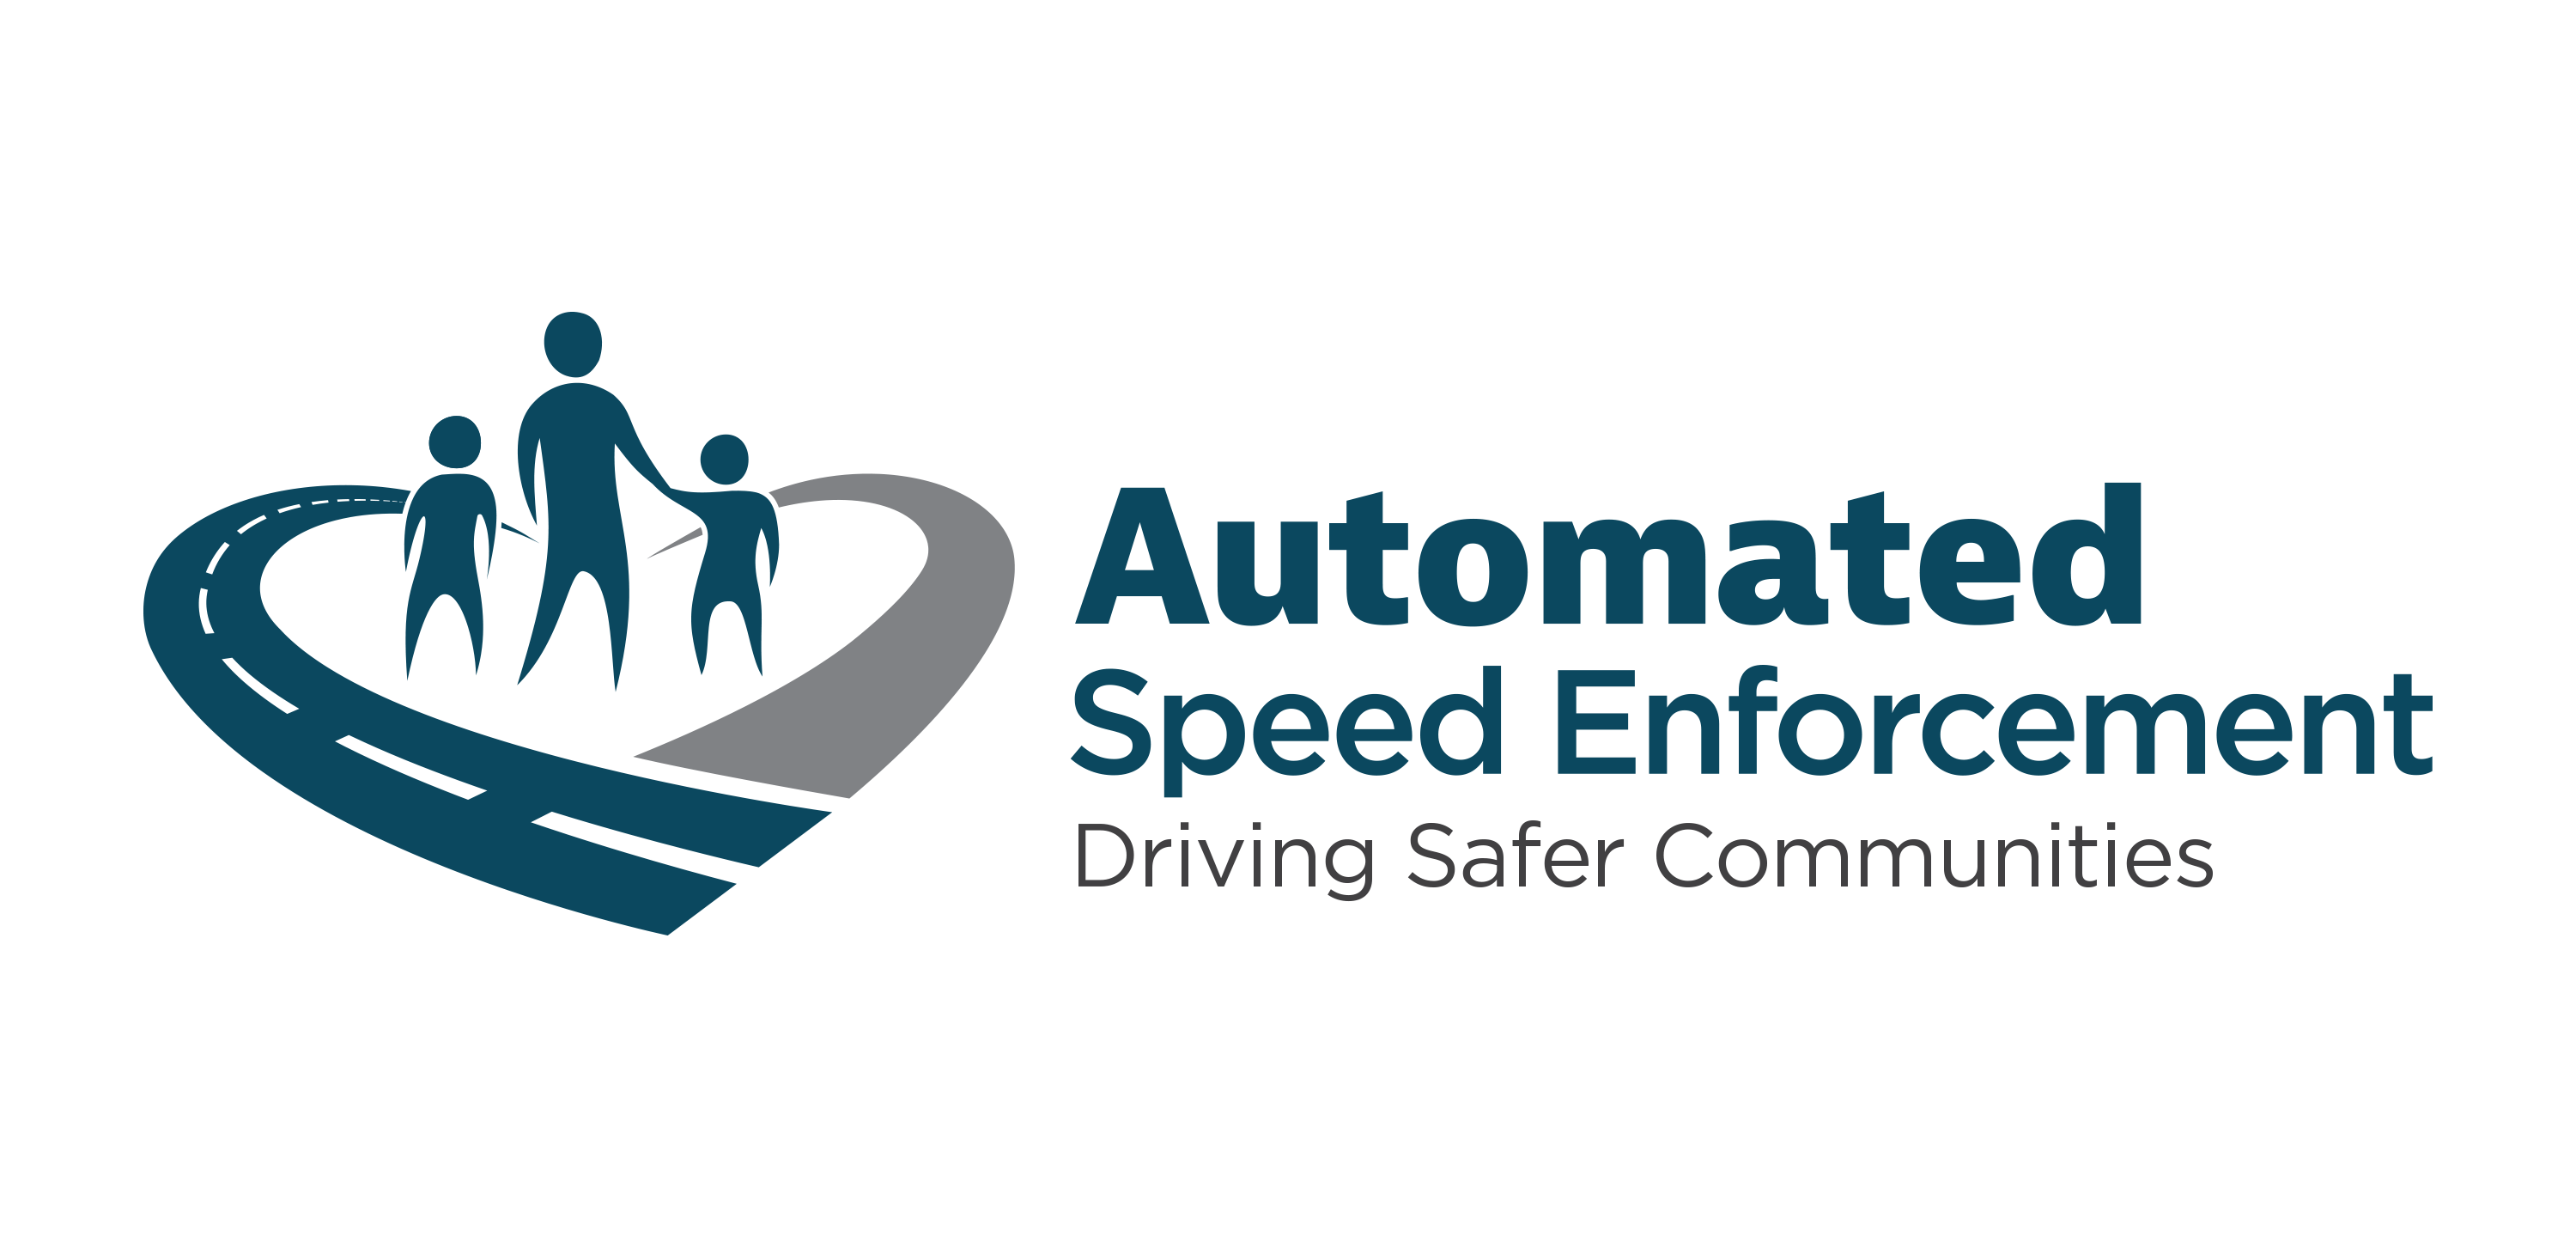 Automated Speed Enforcement logo